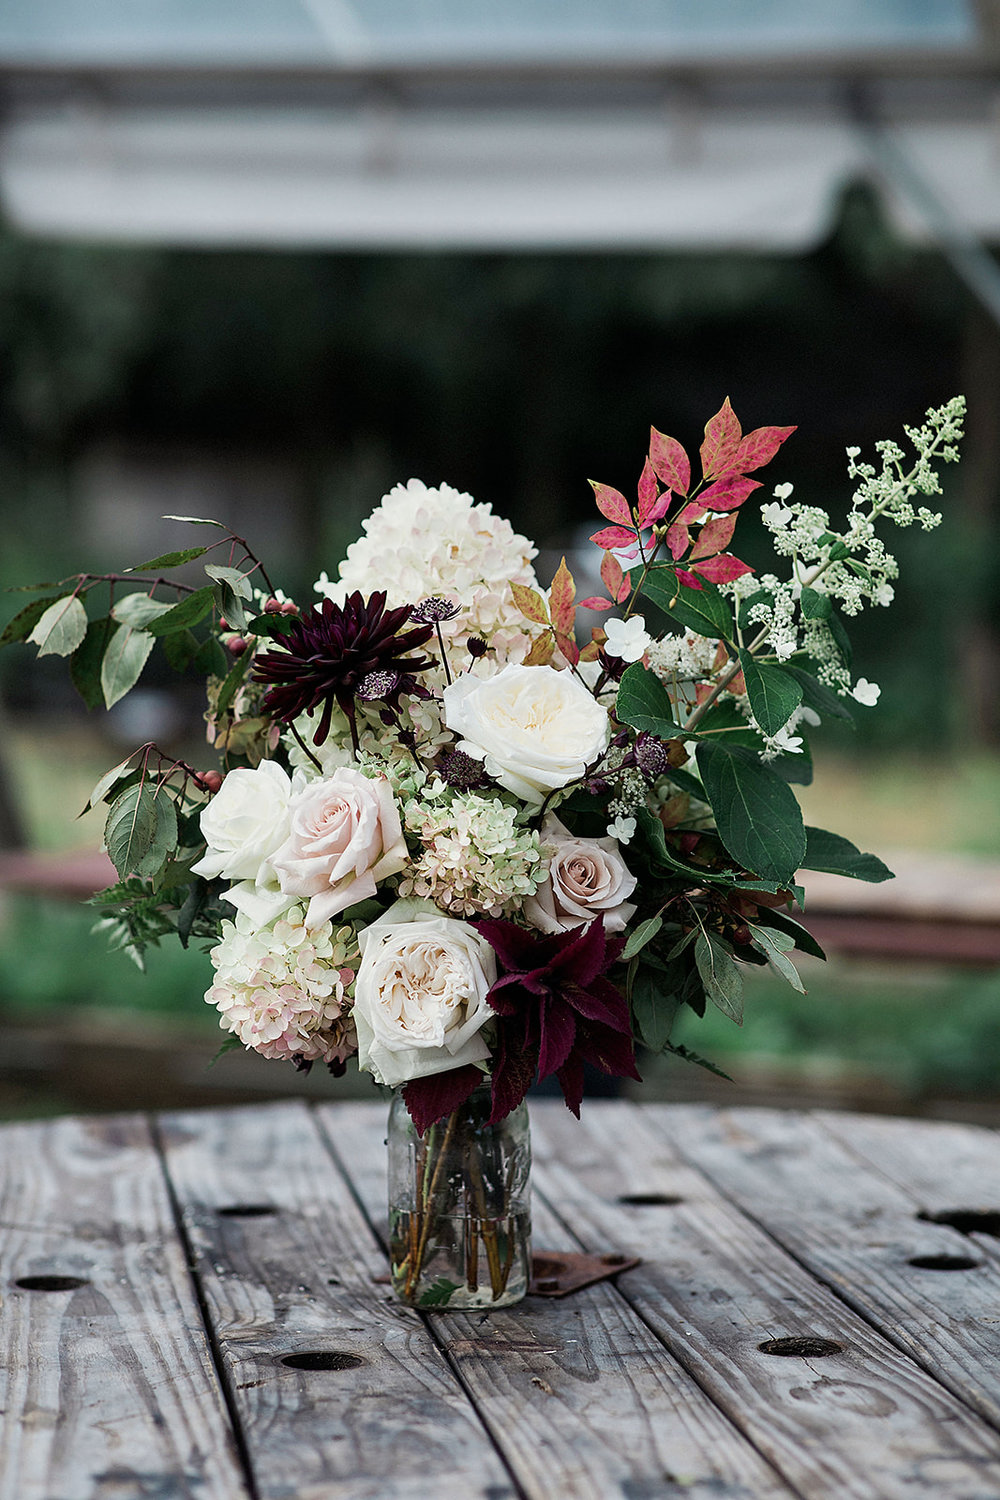 Match your bouquet to the local wildflowers